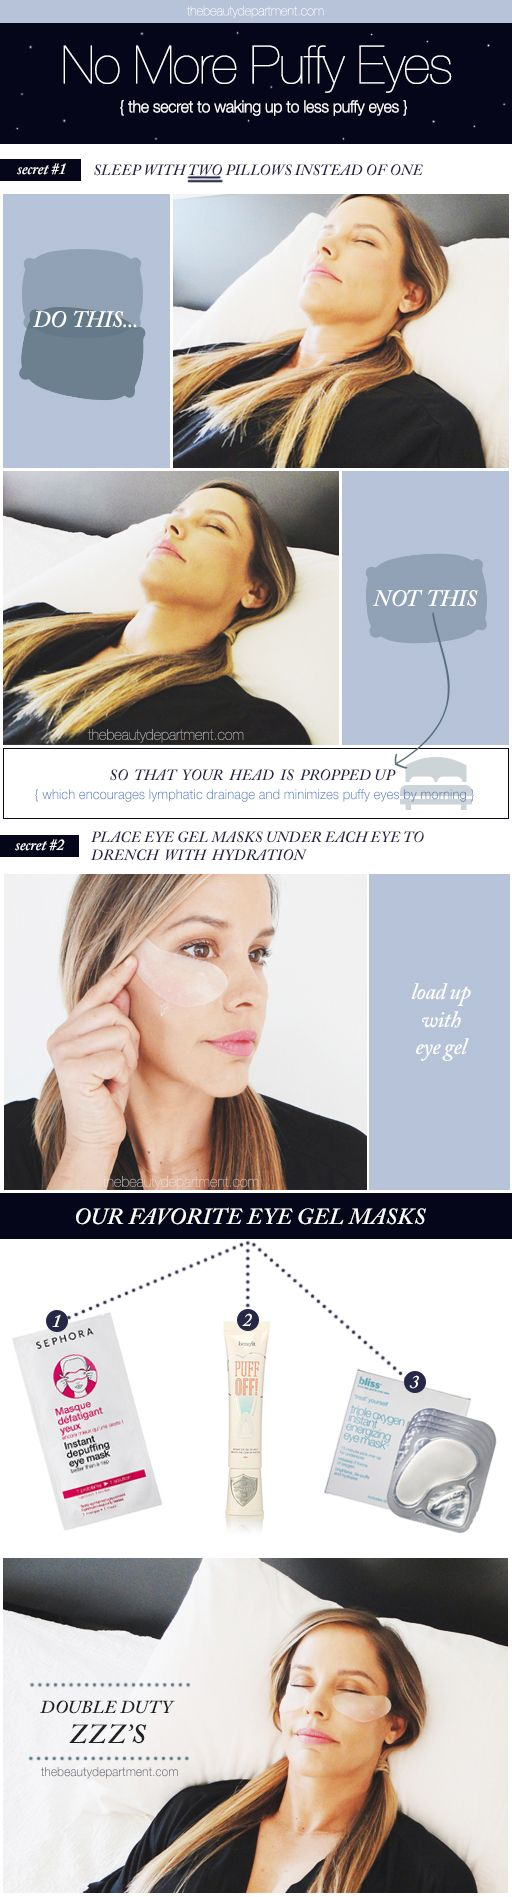 Prop your head, neck and shoulders up with an extra pillow to combat puffy eyes!